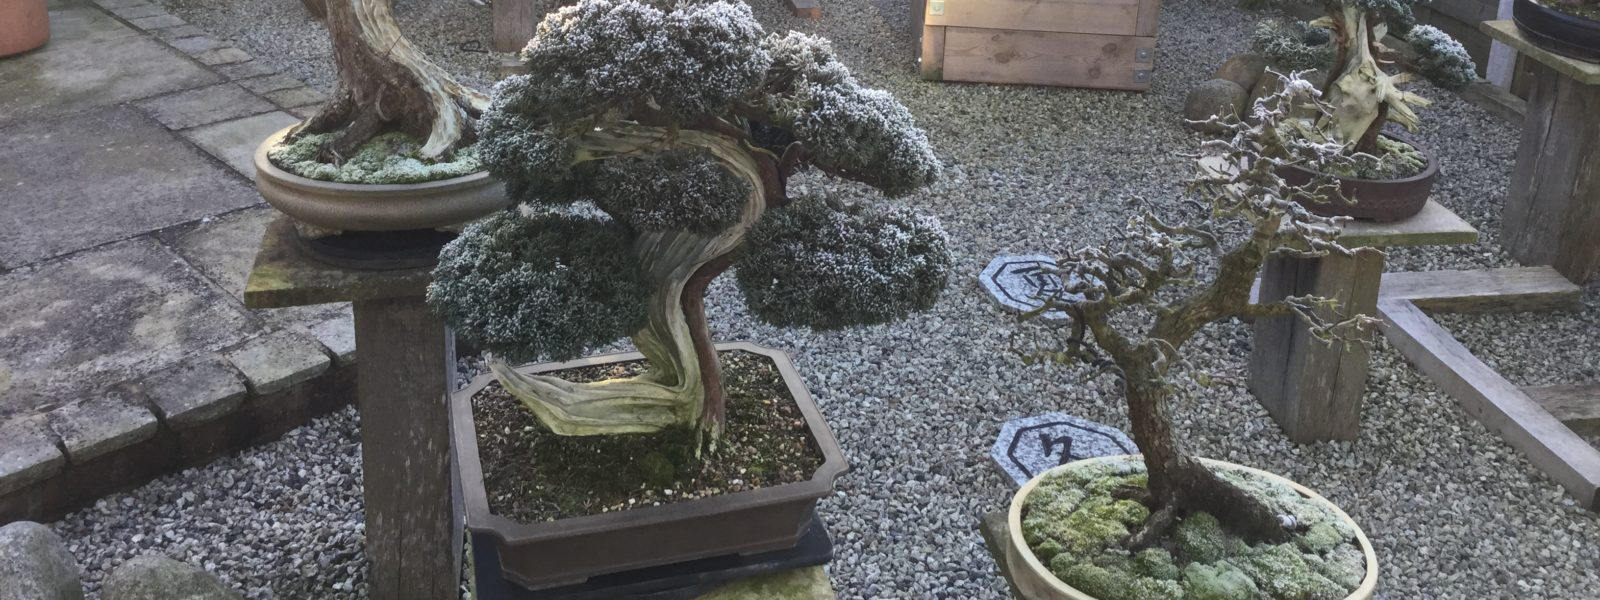 wessex bonsai society 2016